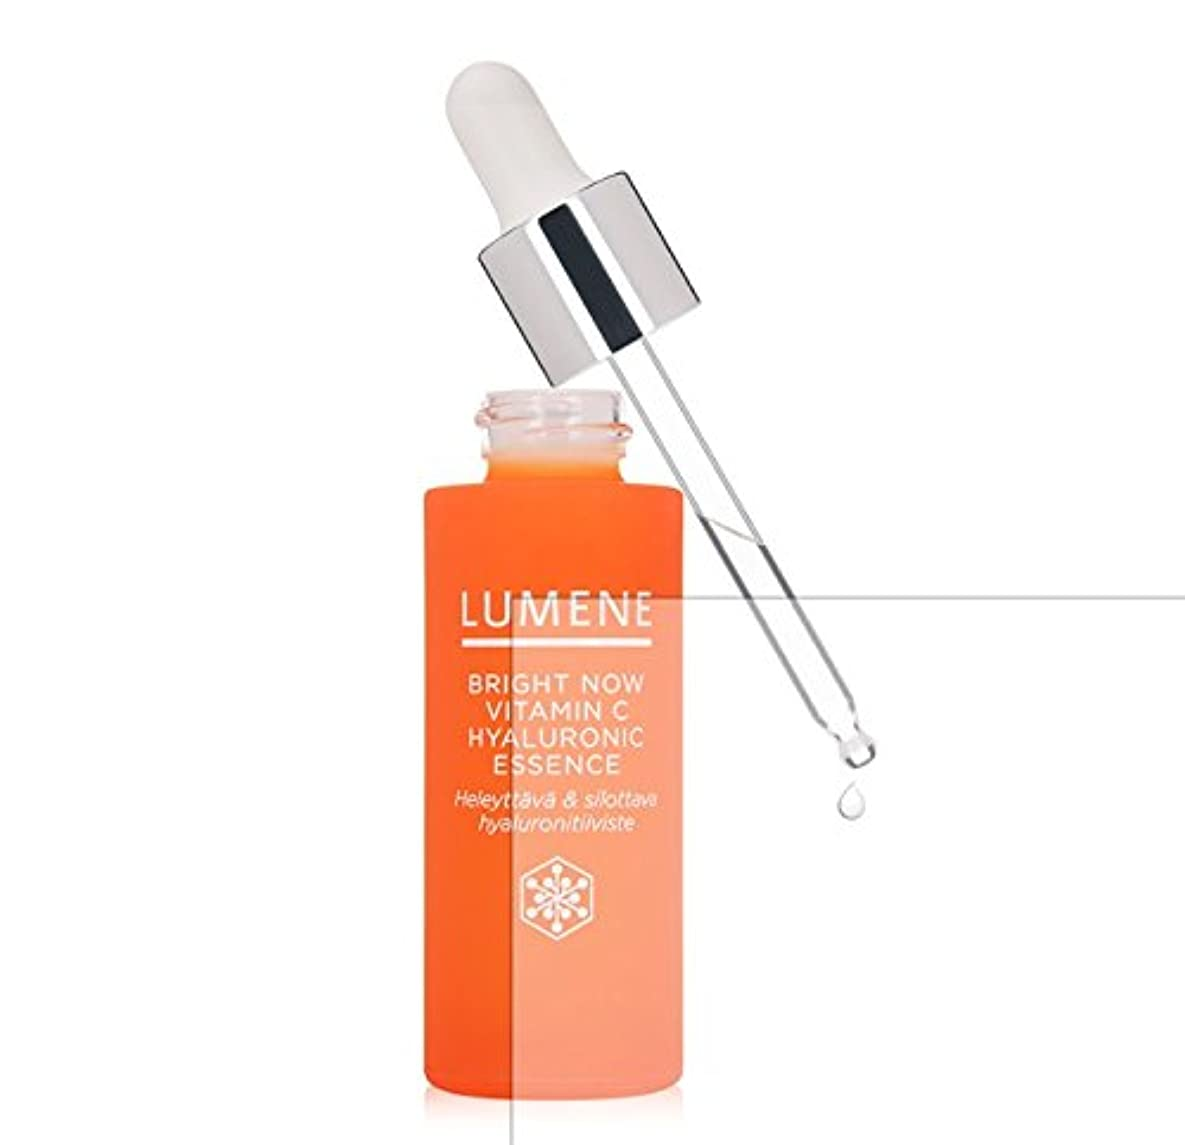 ジム汚れるパターンLumene Bright Now Vitamin C Hyaluronic Essence (1 fl oz.) 美容液 [並行輸入品]